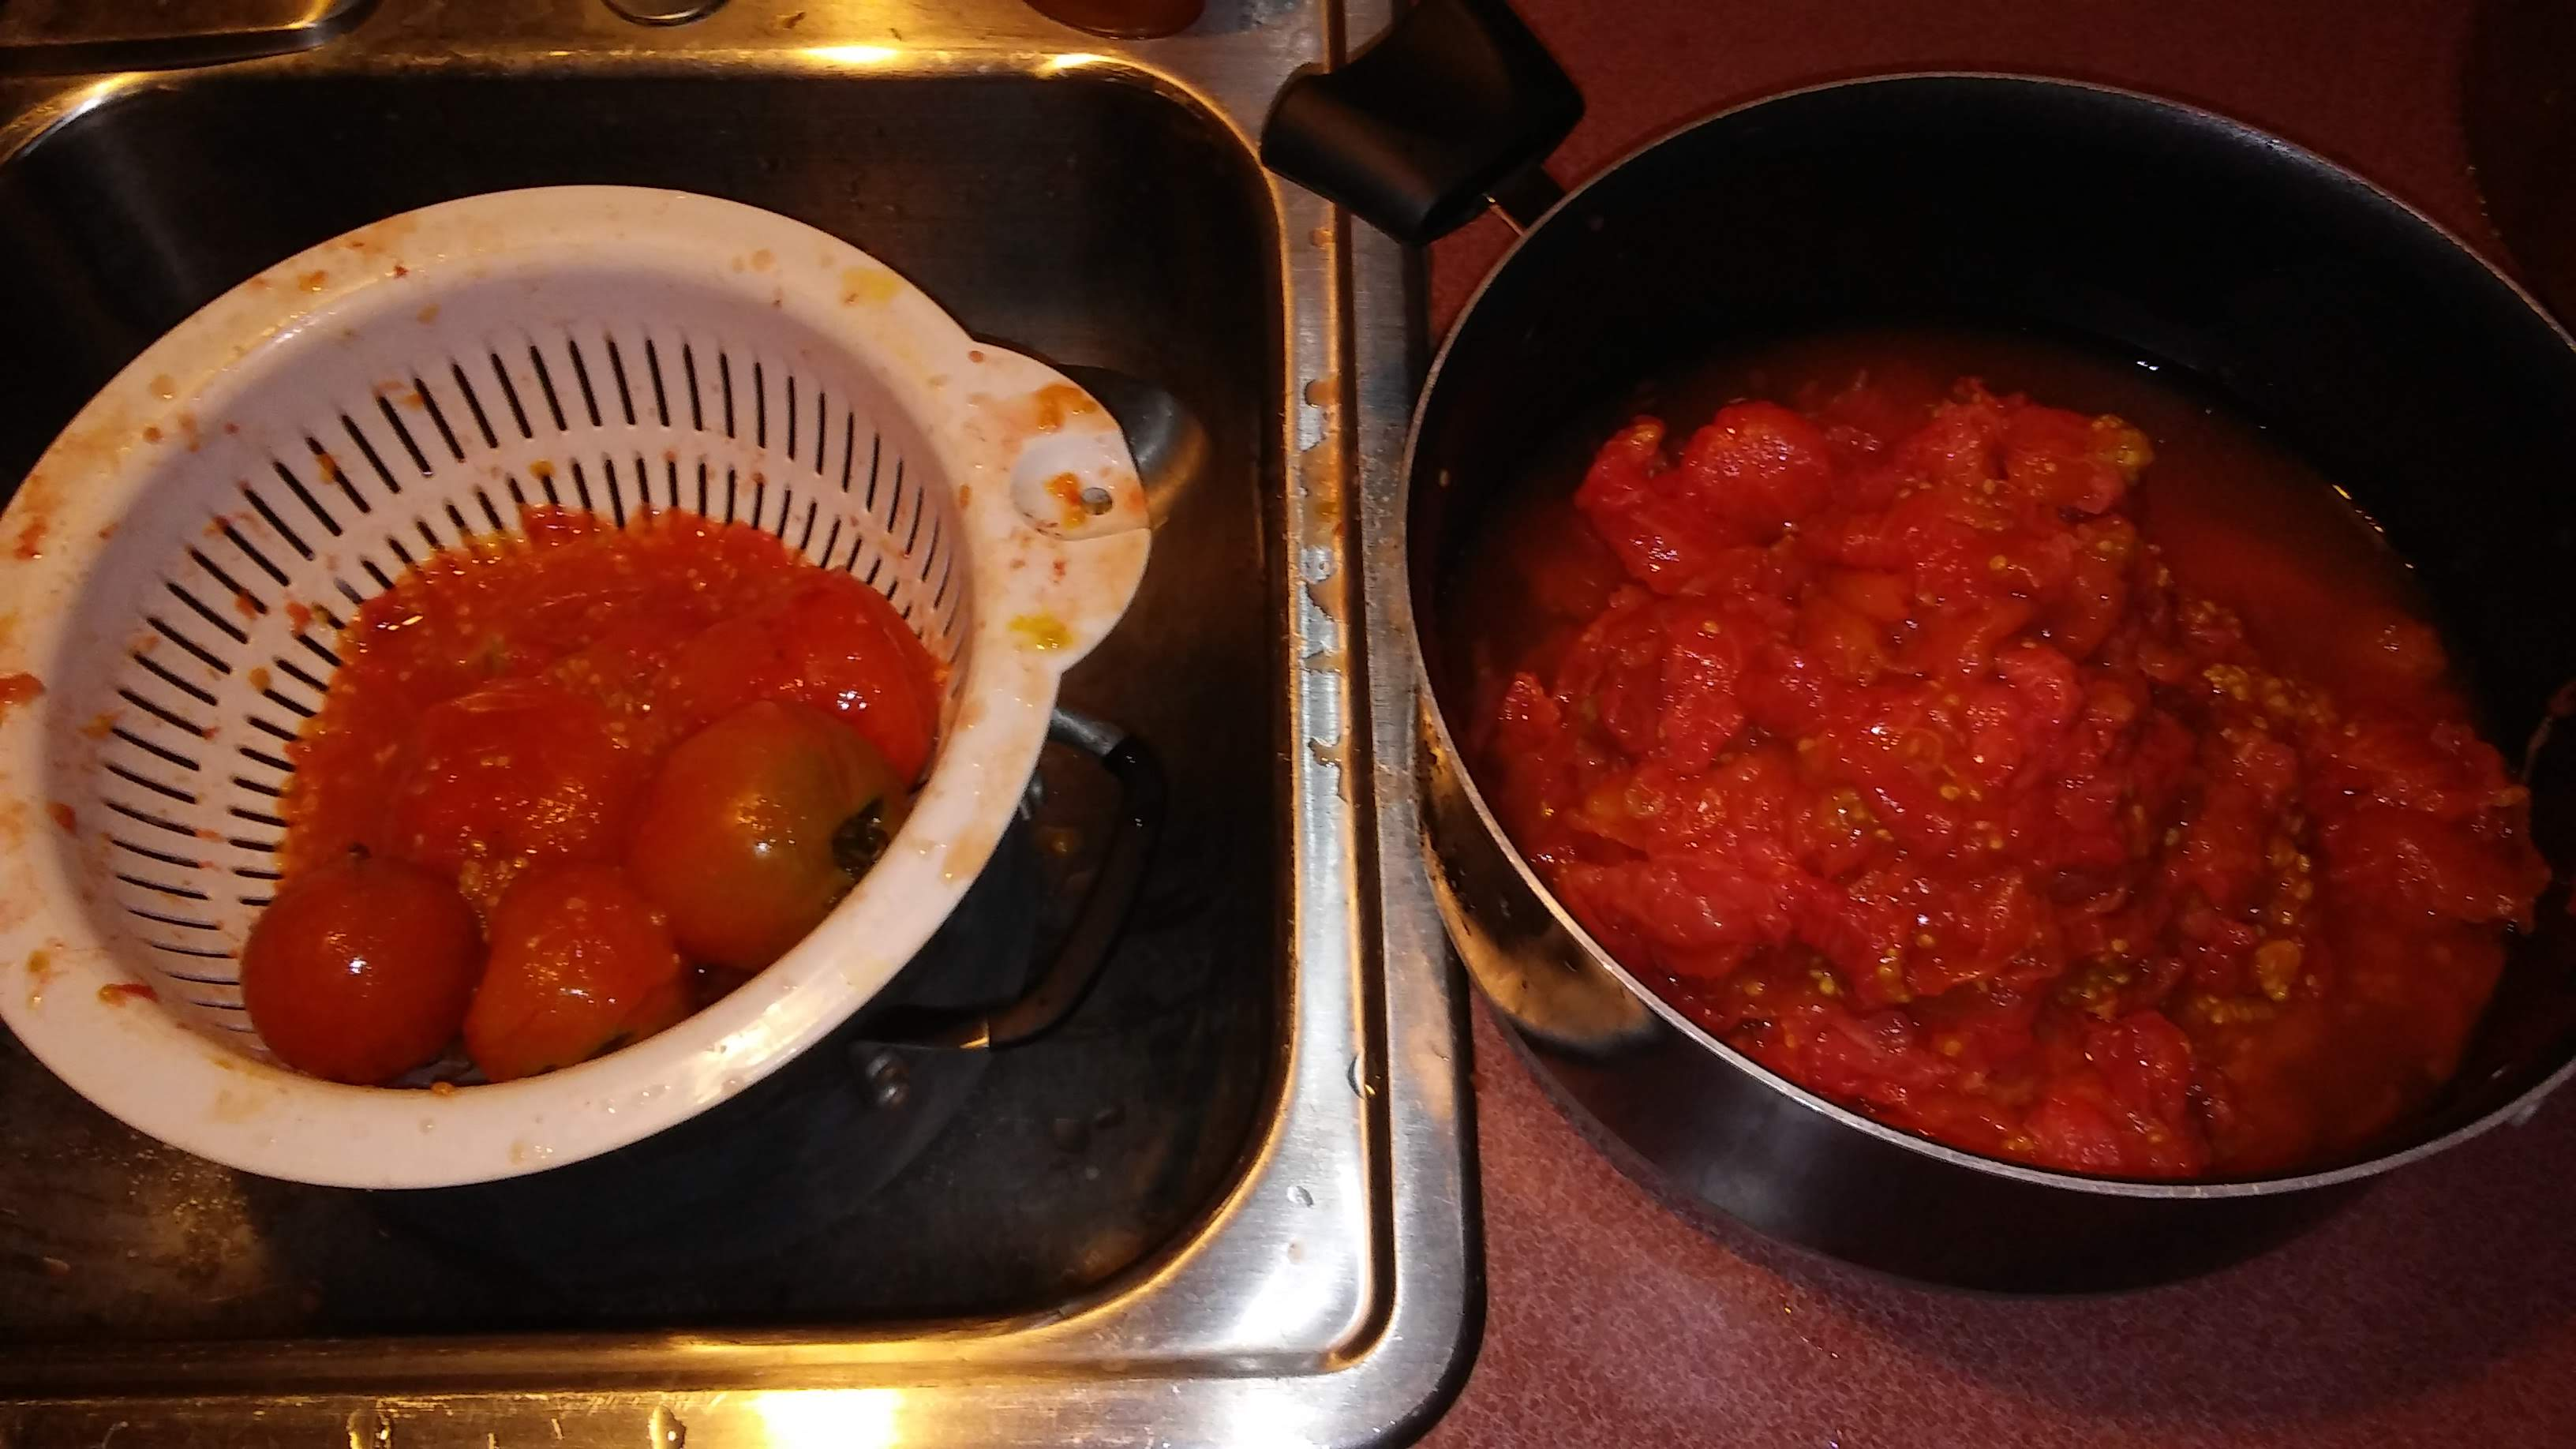 Remove skins and cores from the tomatoes and place in pot